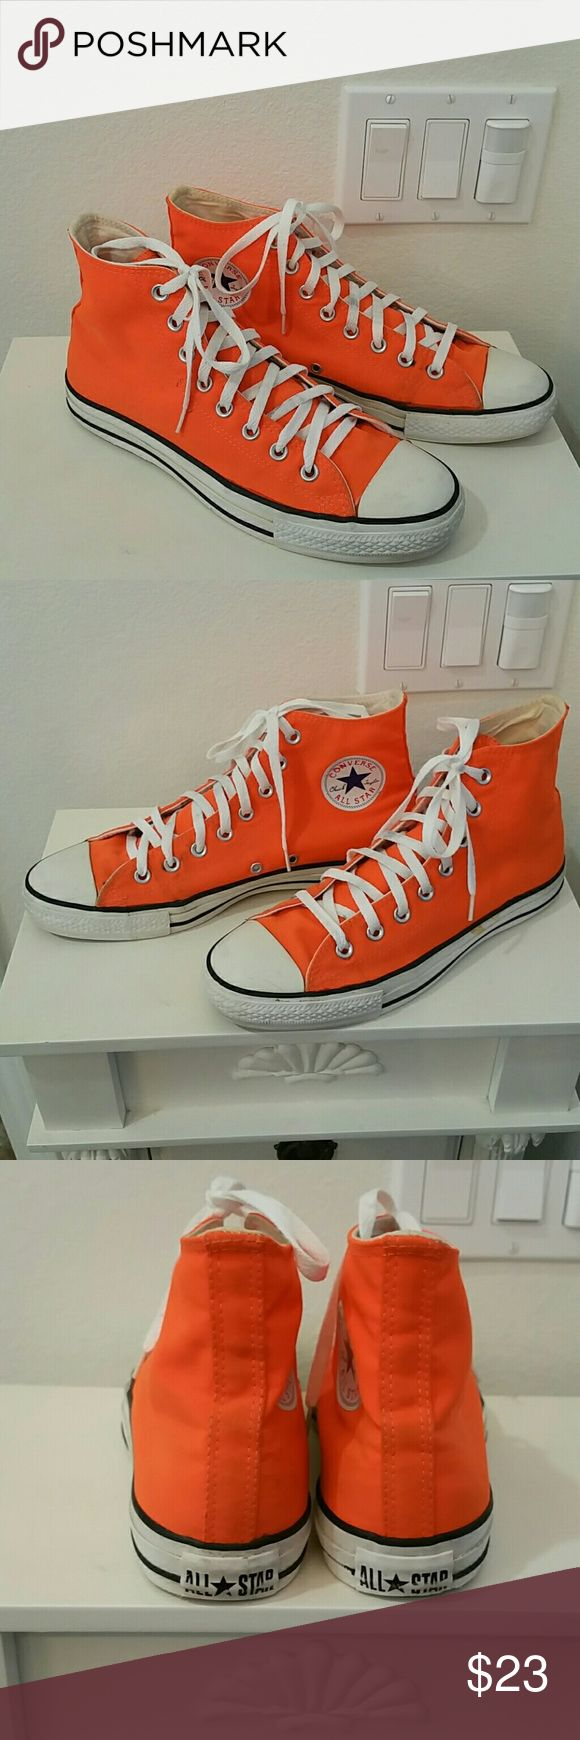 Converse hightops Pre owned orange lace up hightops. A few small marks, but otherwise in good condition.  Lots of life left in them. Please ask questions prior to purchase. Converse Shoes Sneakers